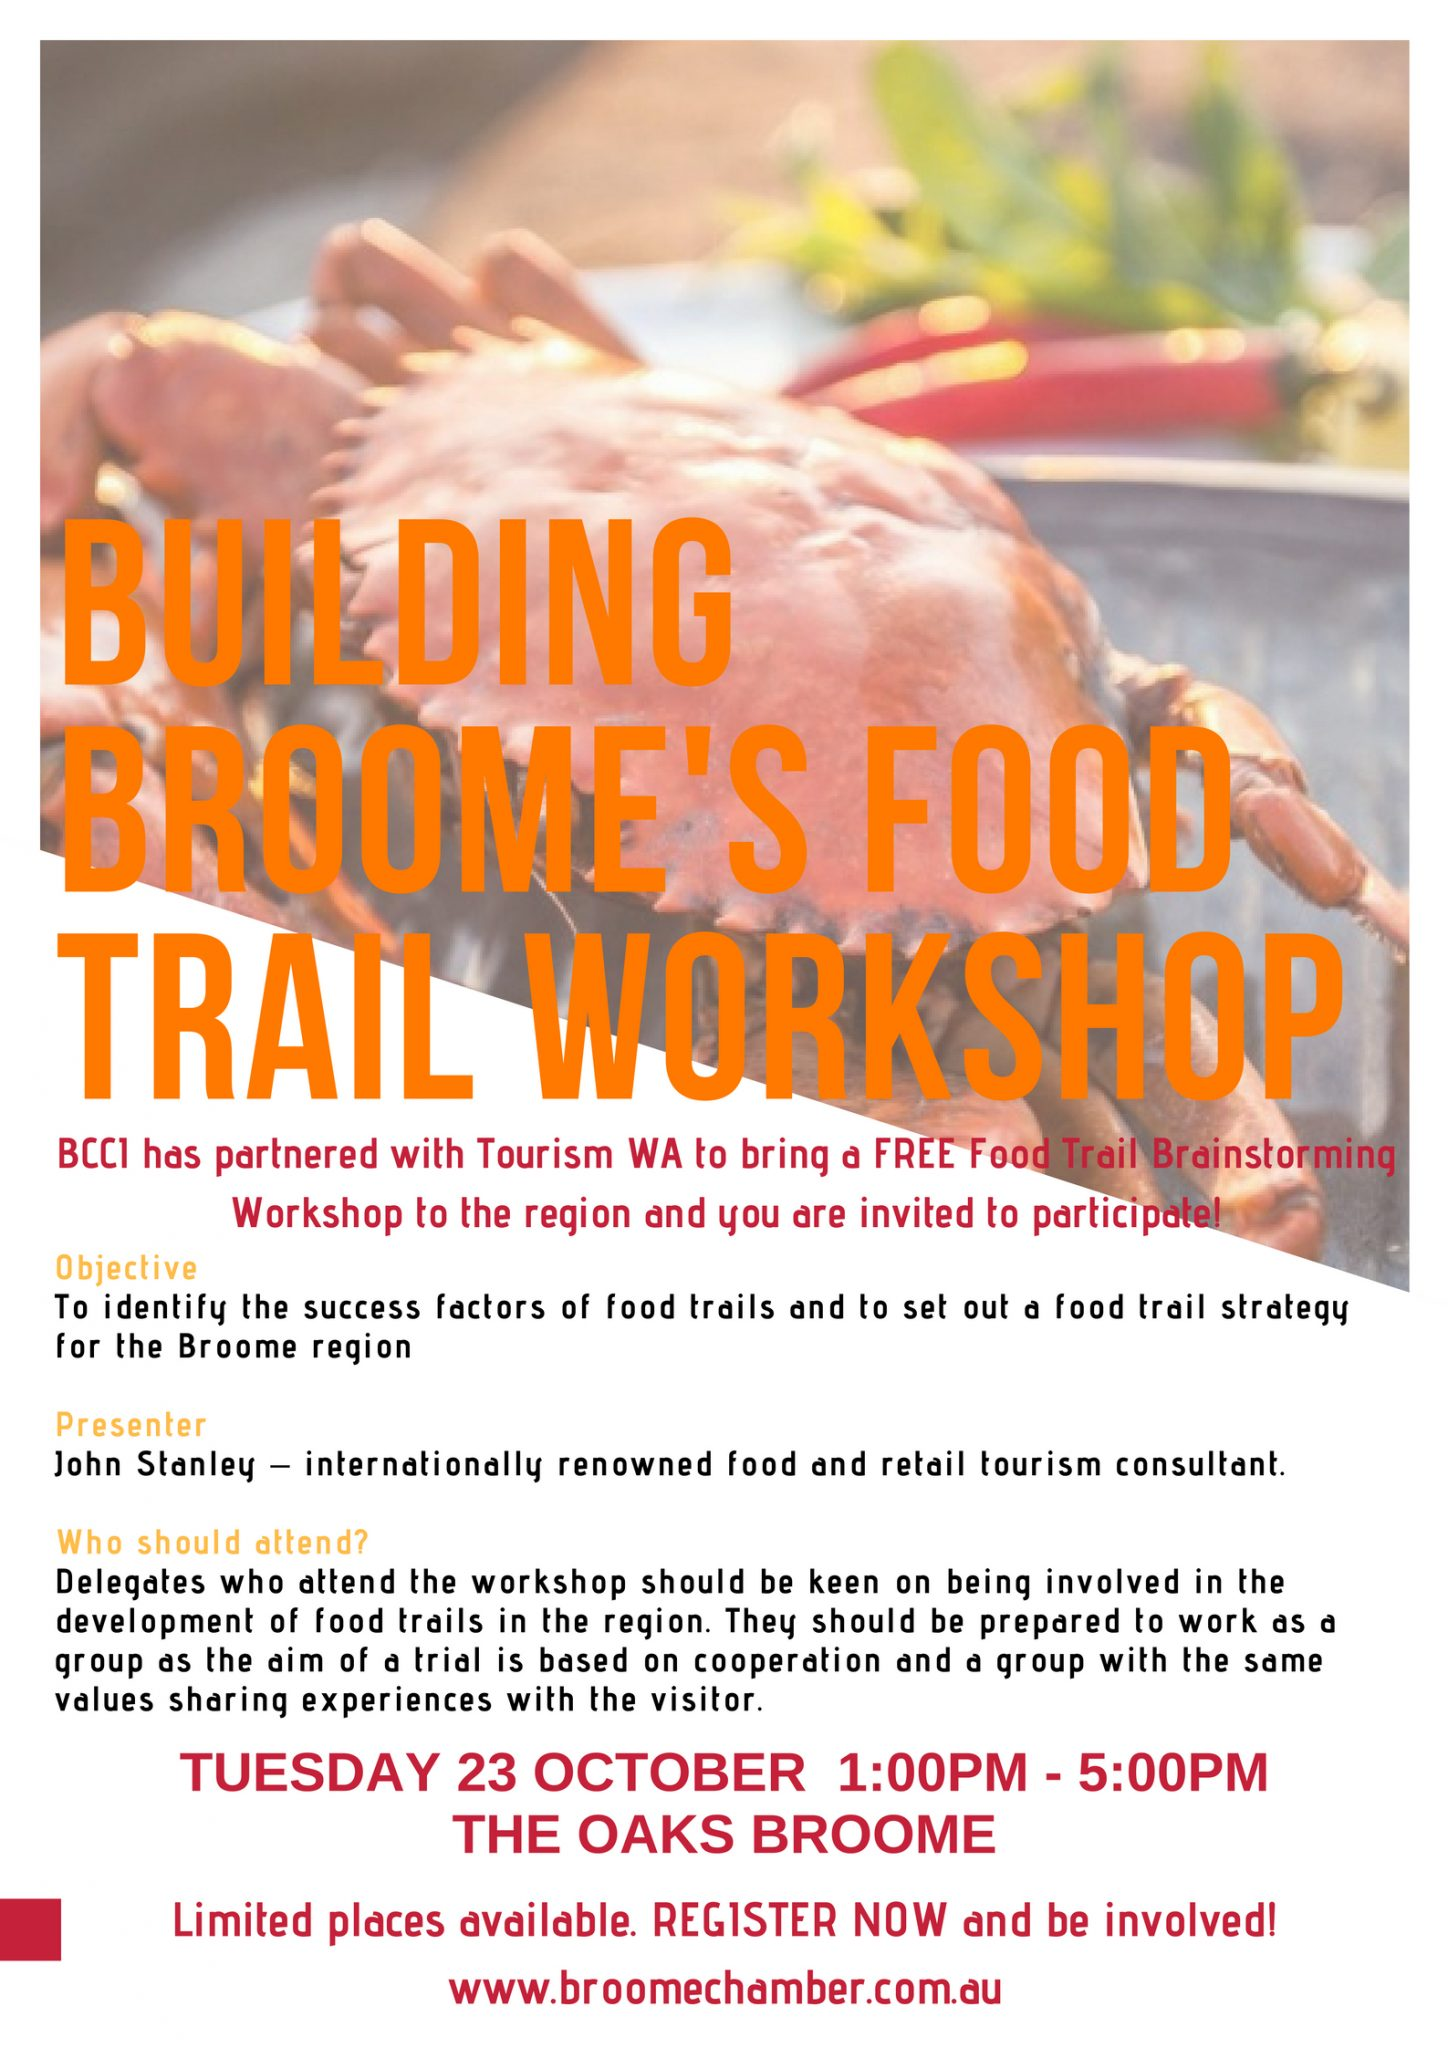 Building Broome's Food Trail Workshop